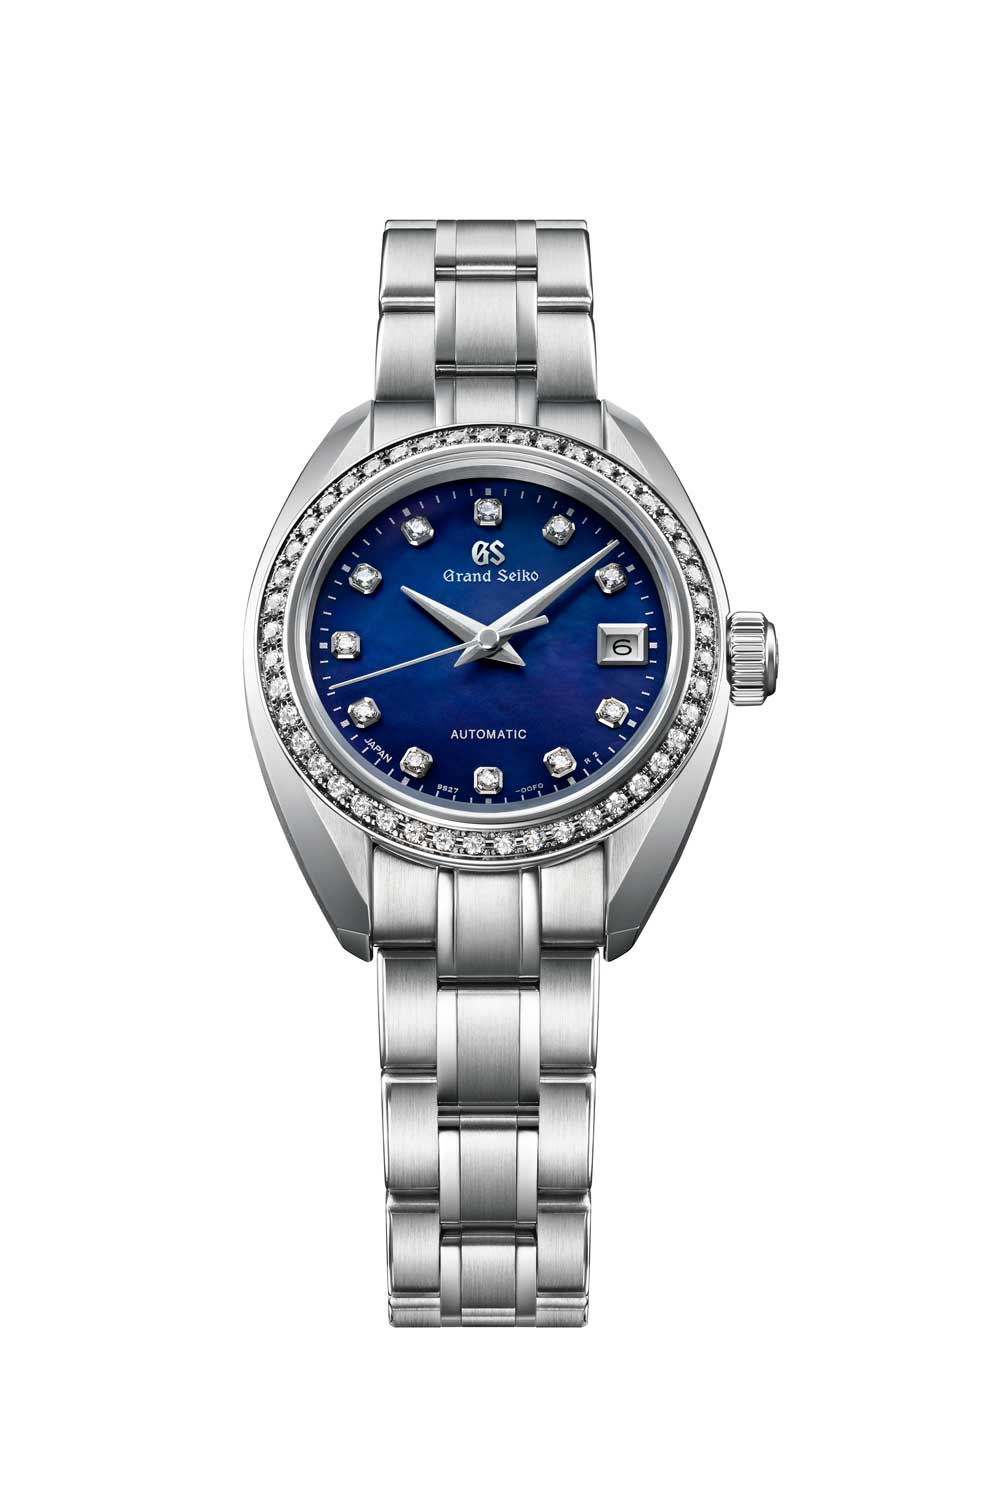 Grand Seiko Elegance Collection Women's Automatic Limited Edition (300 pieces)